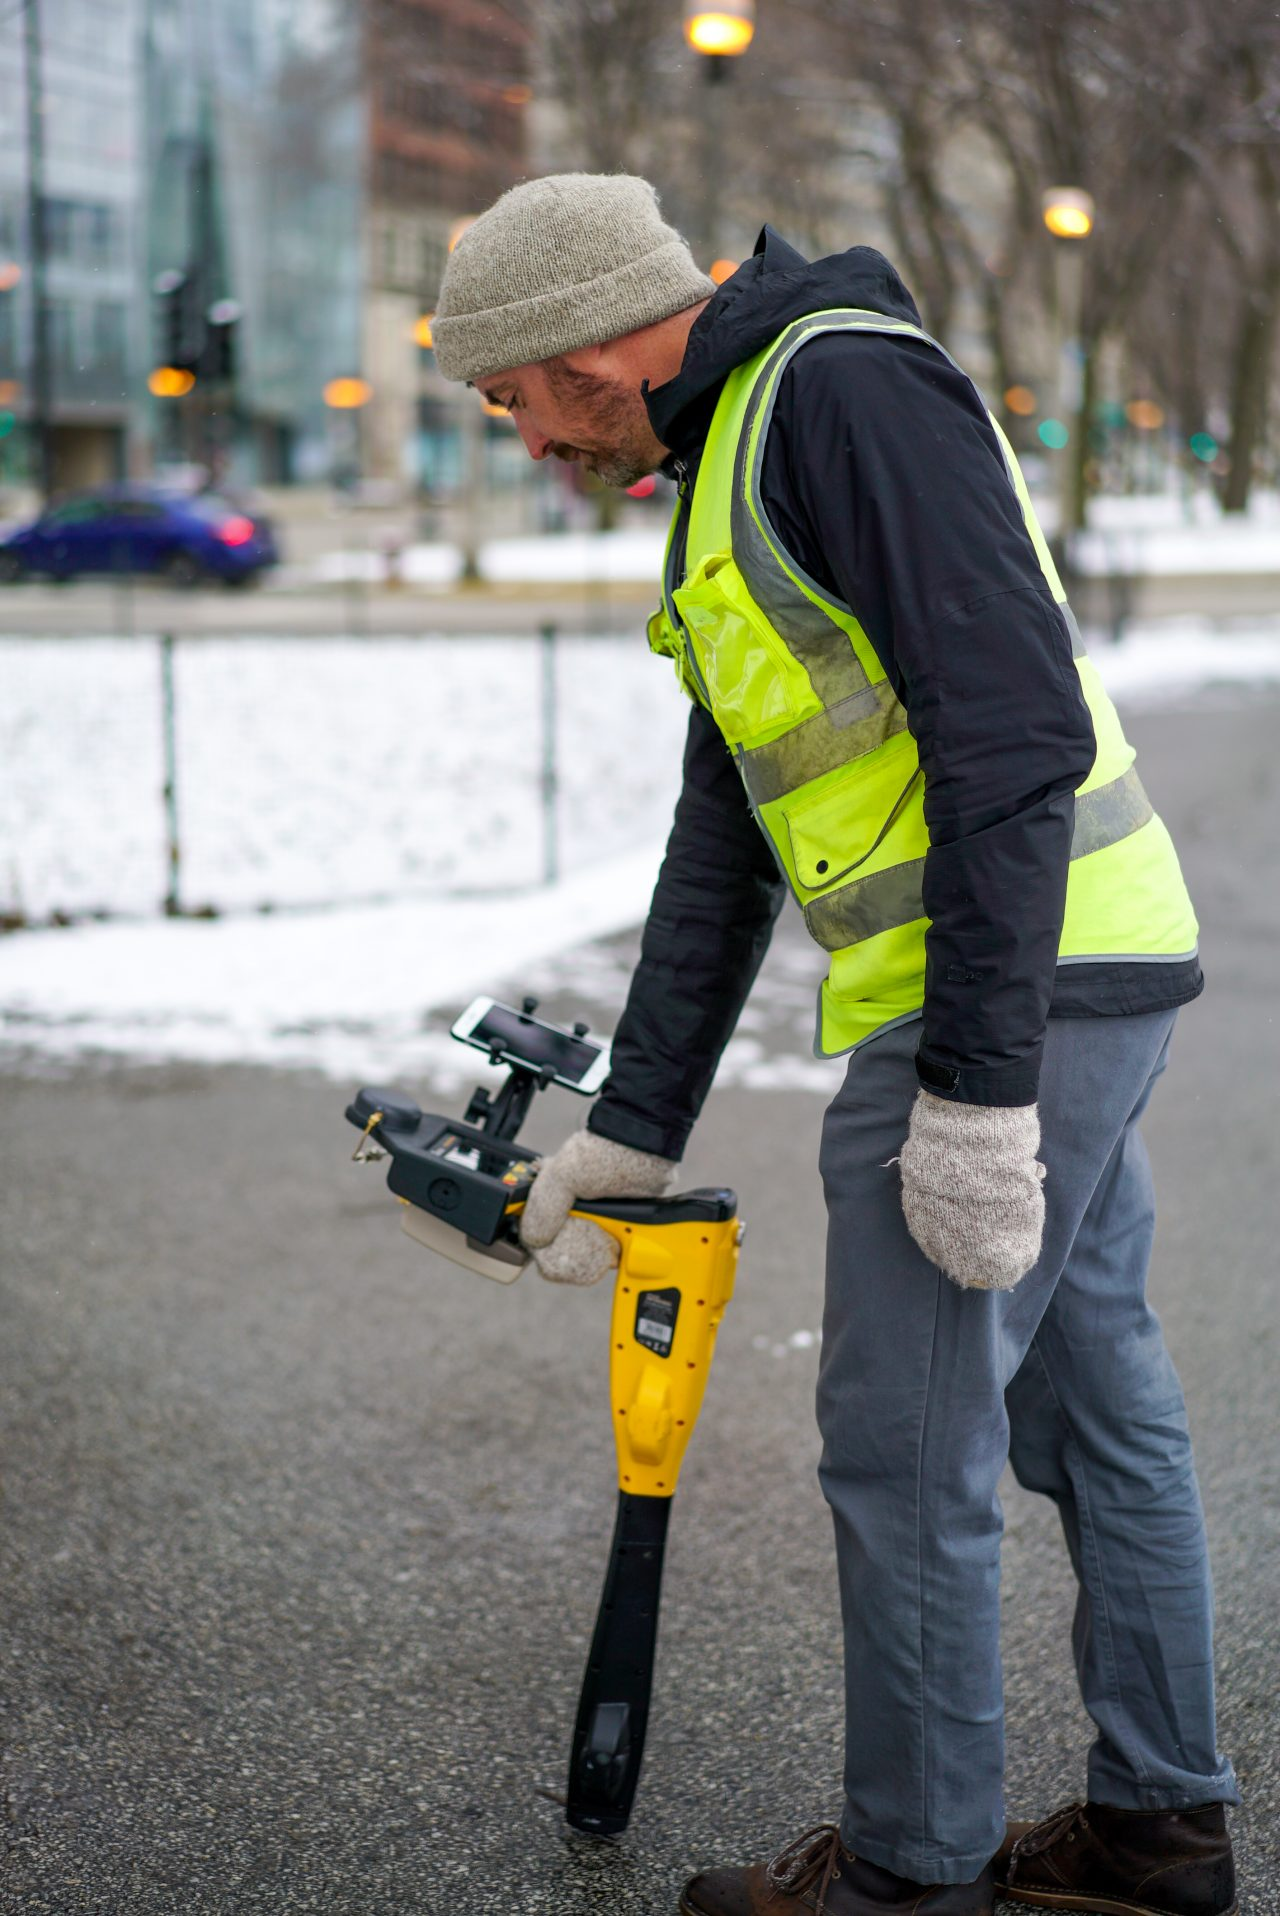 Eos Locate™ for ArcGIS Field Maps, Collector, Eos Tools Pro, underground utility mapping buried assets GPS GIS GNSS mapping Chicago